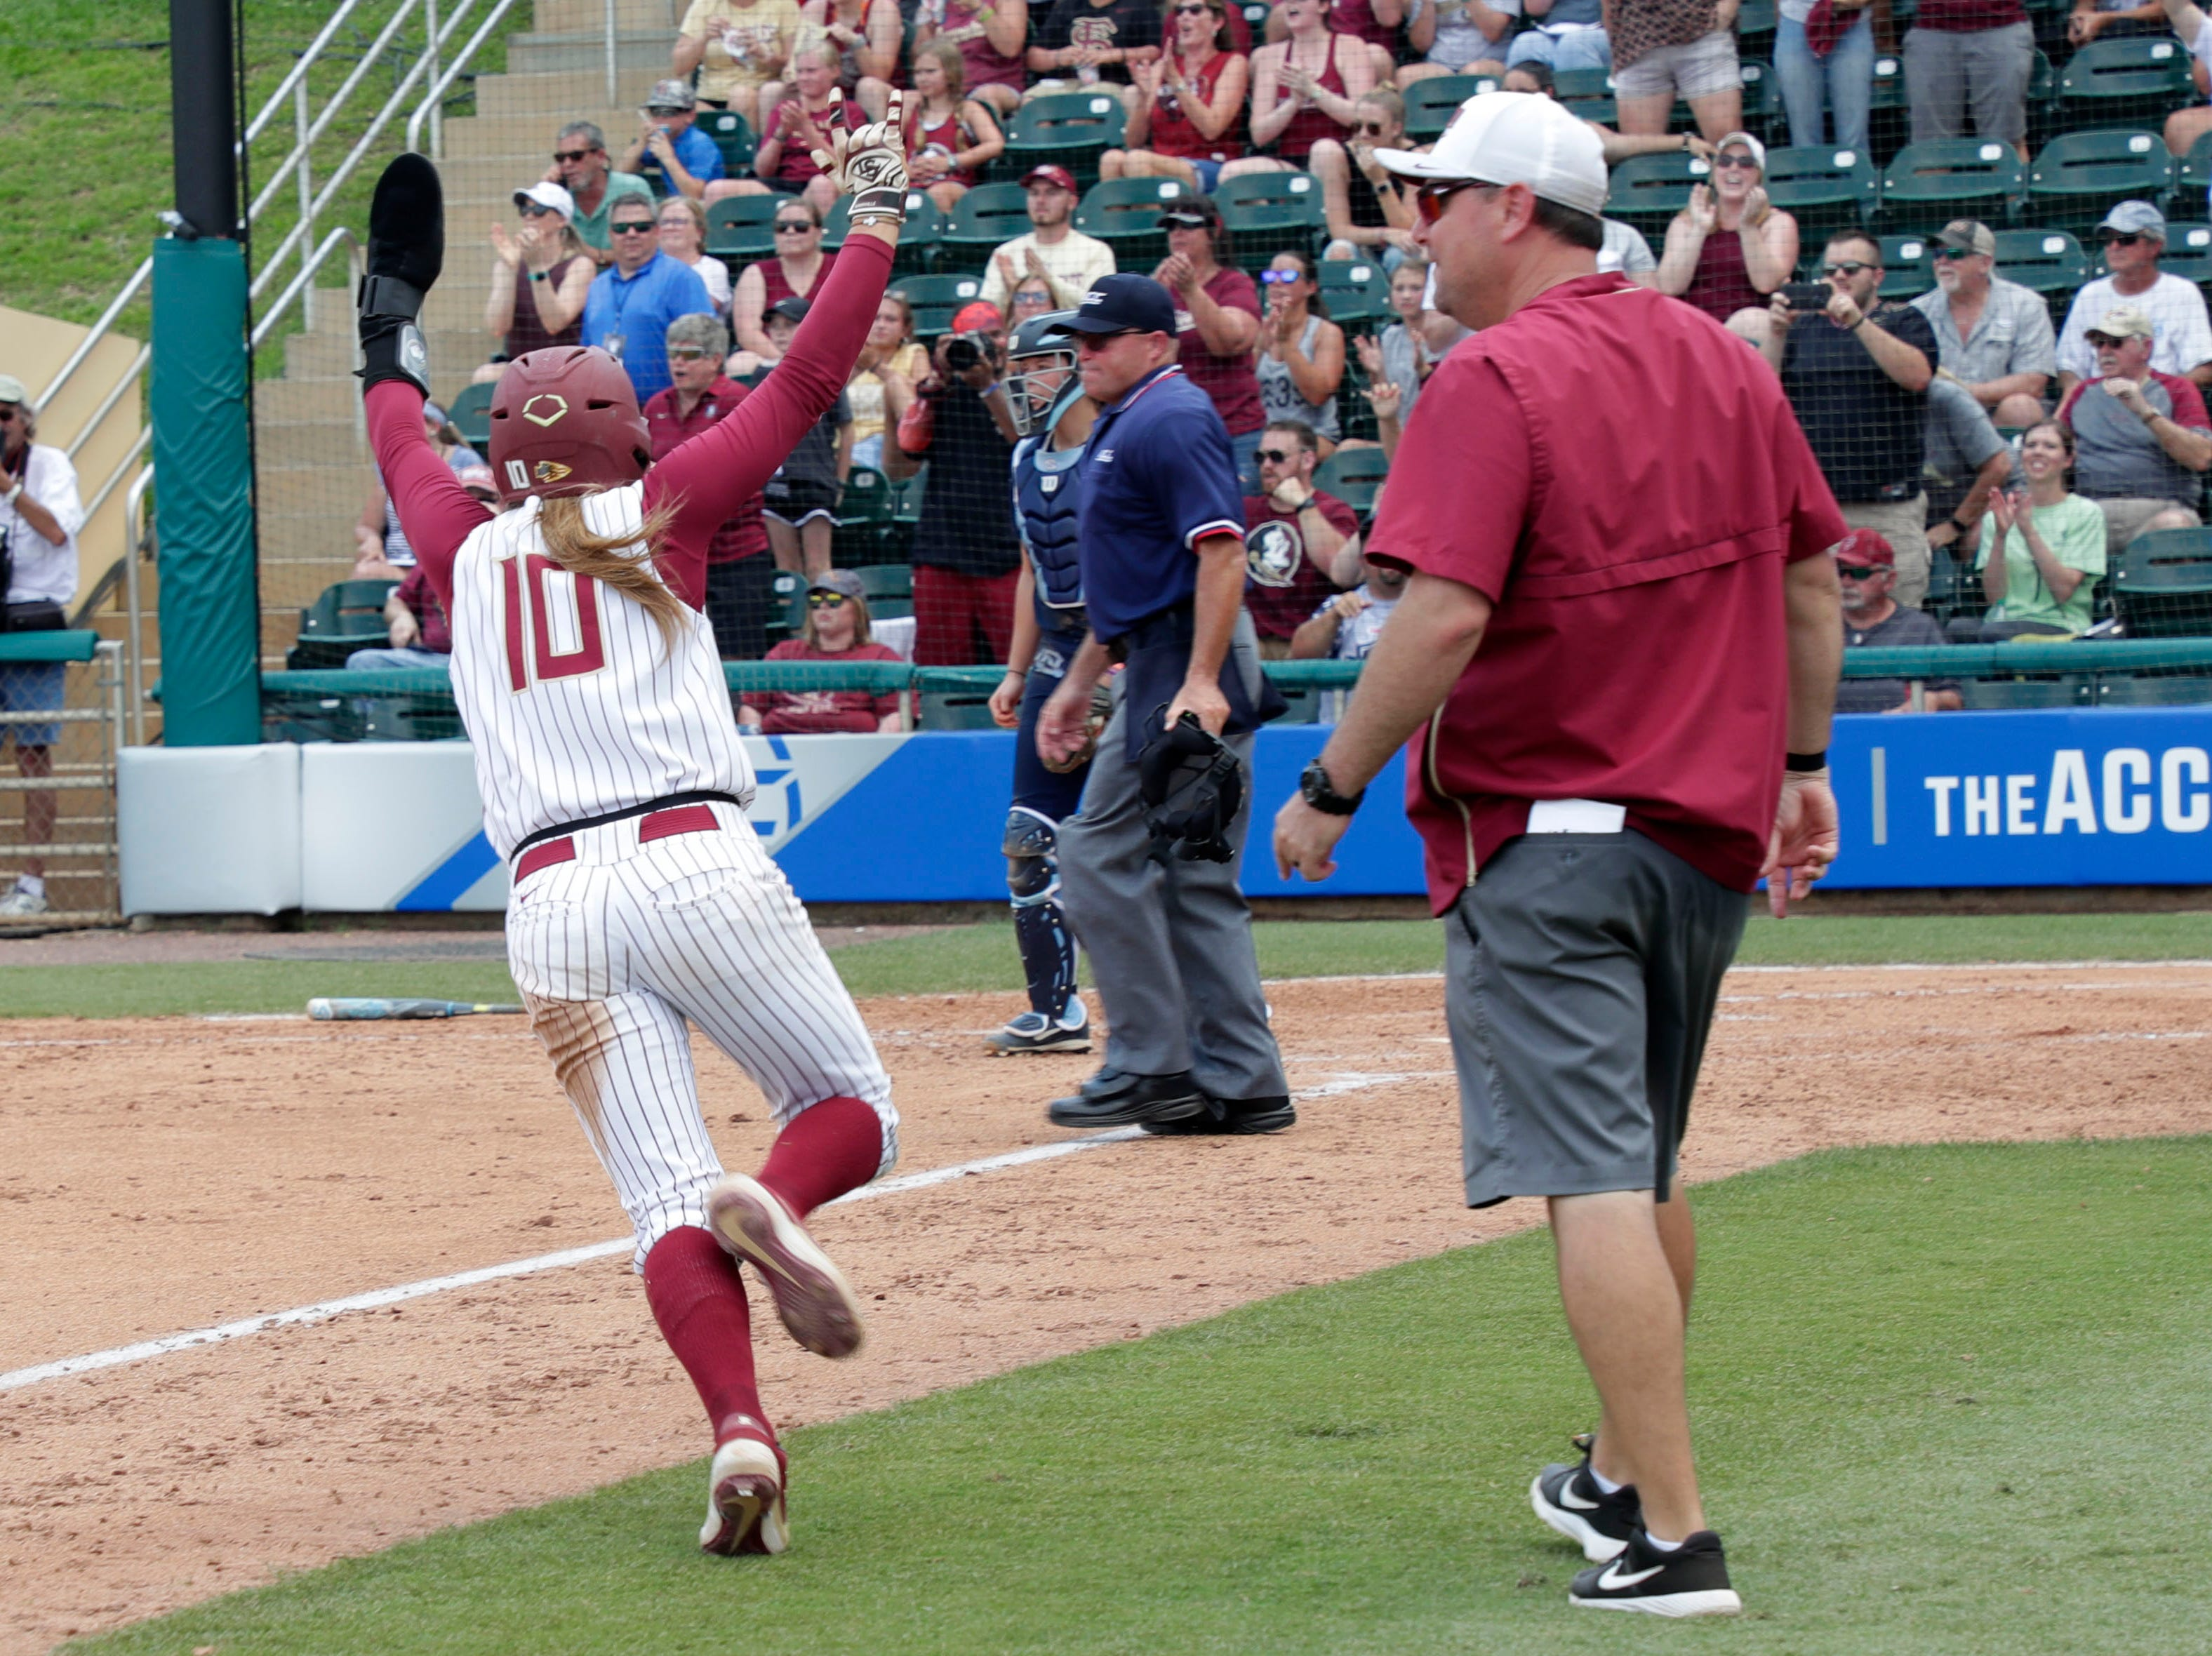 Florida State Seminoles infielder Cali Harrod (10) runs in celebrating her team's victory. The Florida State Seminoles host the UNC Tar Heels for the ACC Softball Tournament finals Saturday, May 11, 2019.